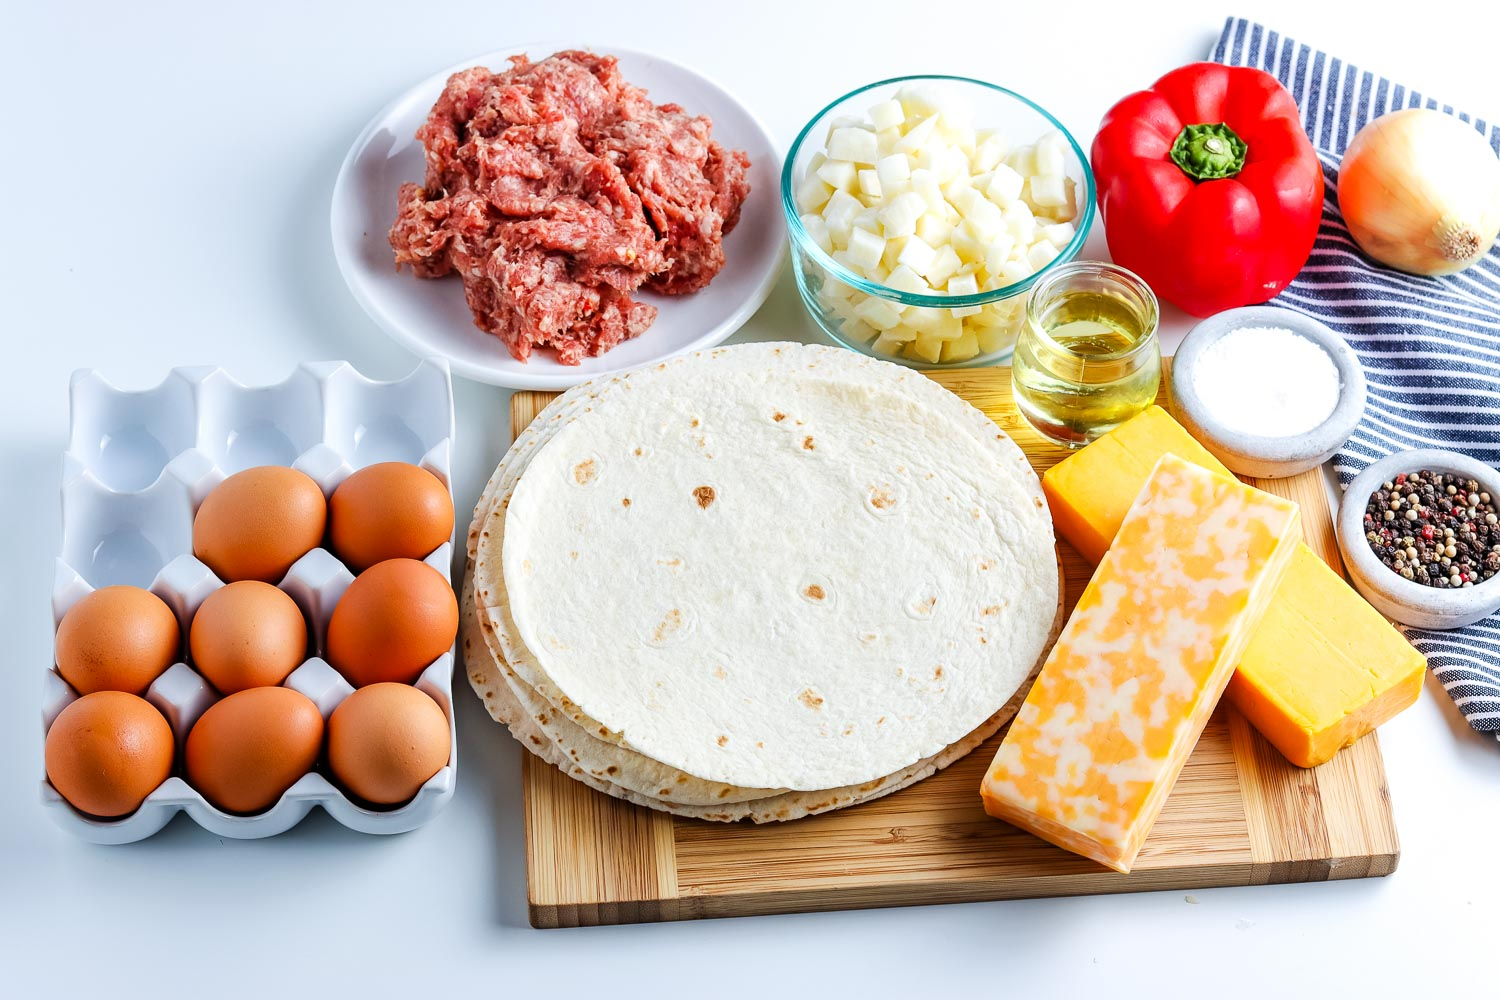 All of the ingredients needed to make this Breakfast Burrito recipe.